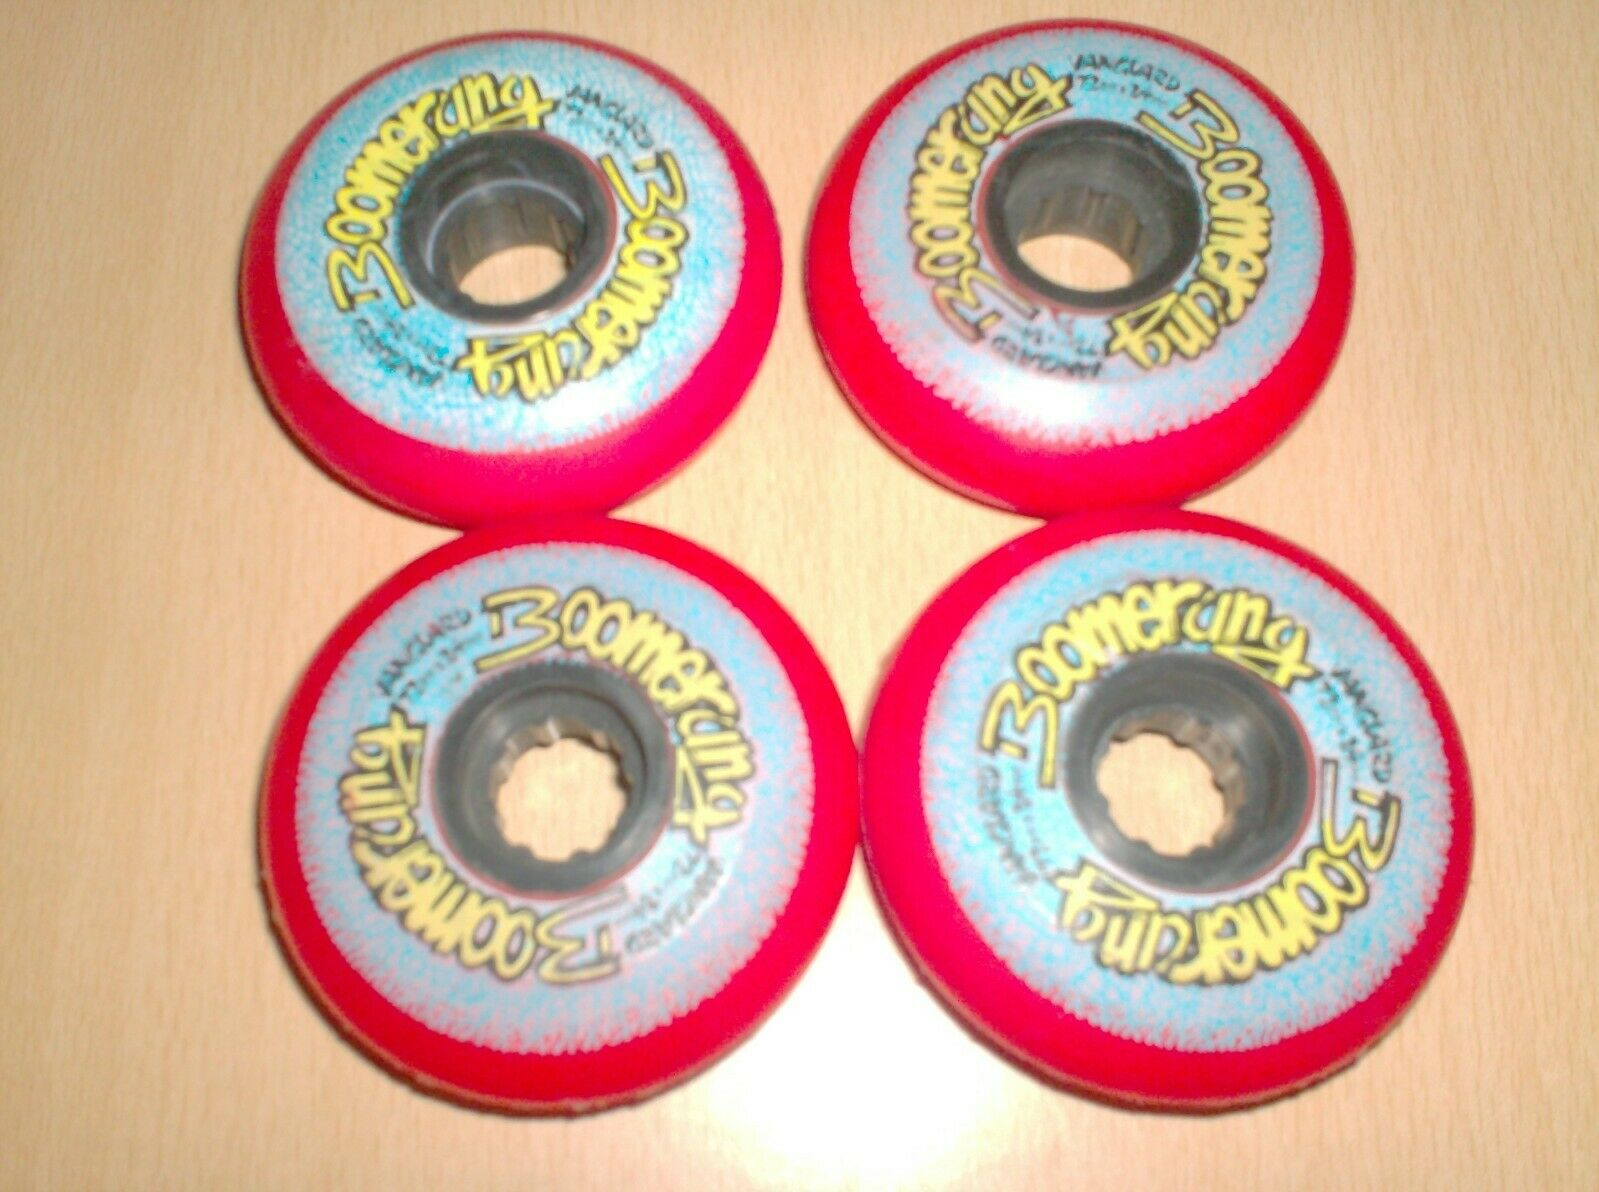 Vintage rollerblade wheels - set  of 4 - boomerang vanguard red new nos 1980  choose your favorite